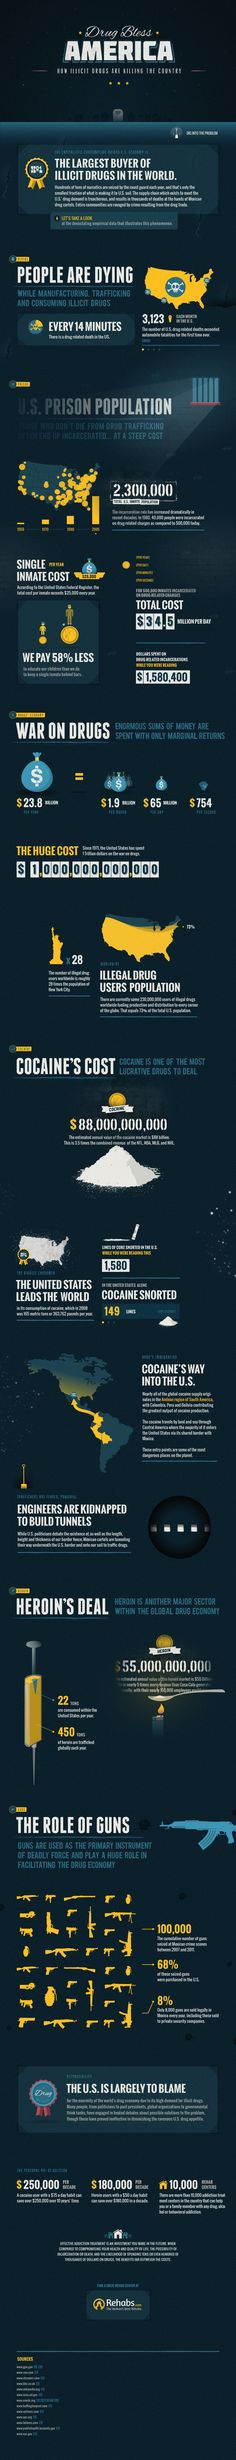 Cocaine And Heroin Jokes Are Absolutely Hilarious. Just Read This Graphic To See How Funny They Are.